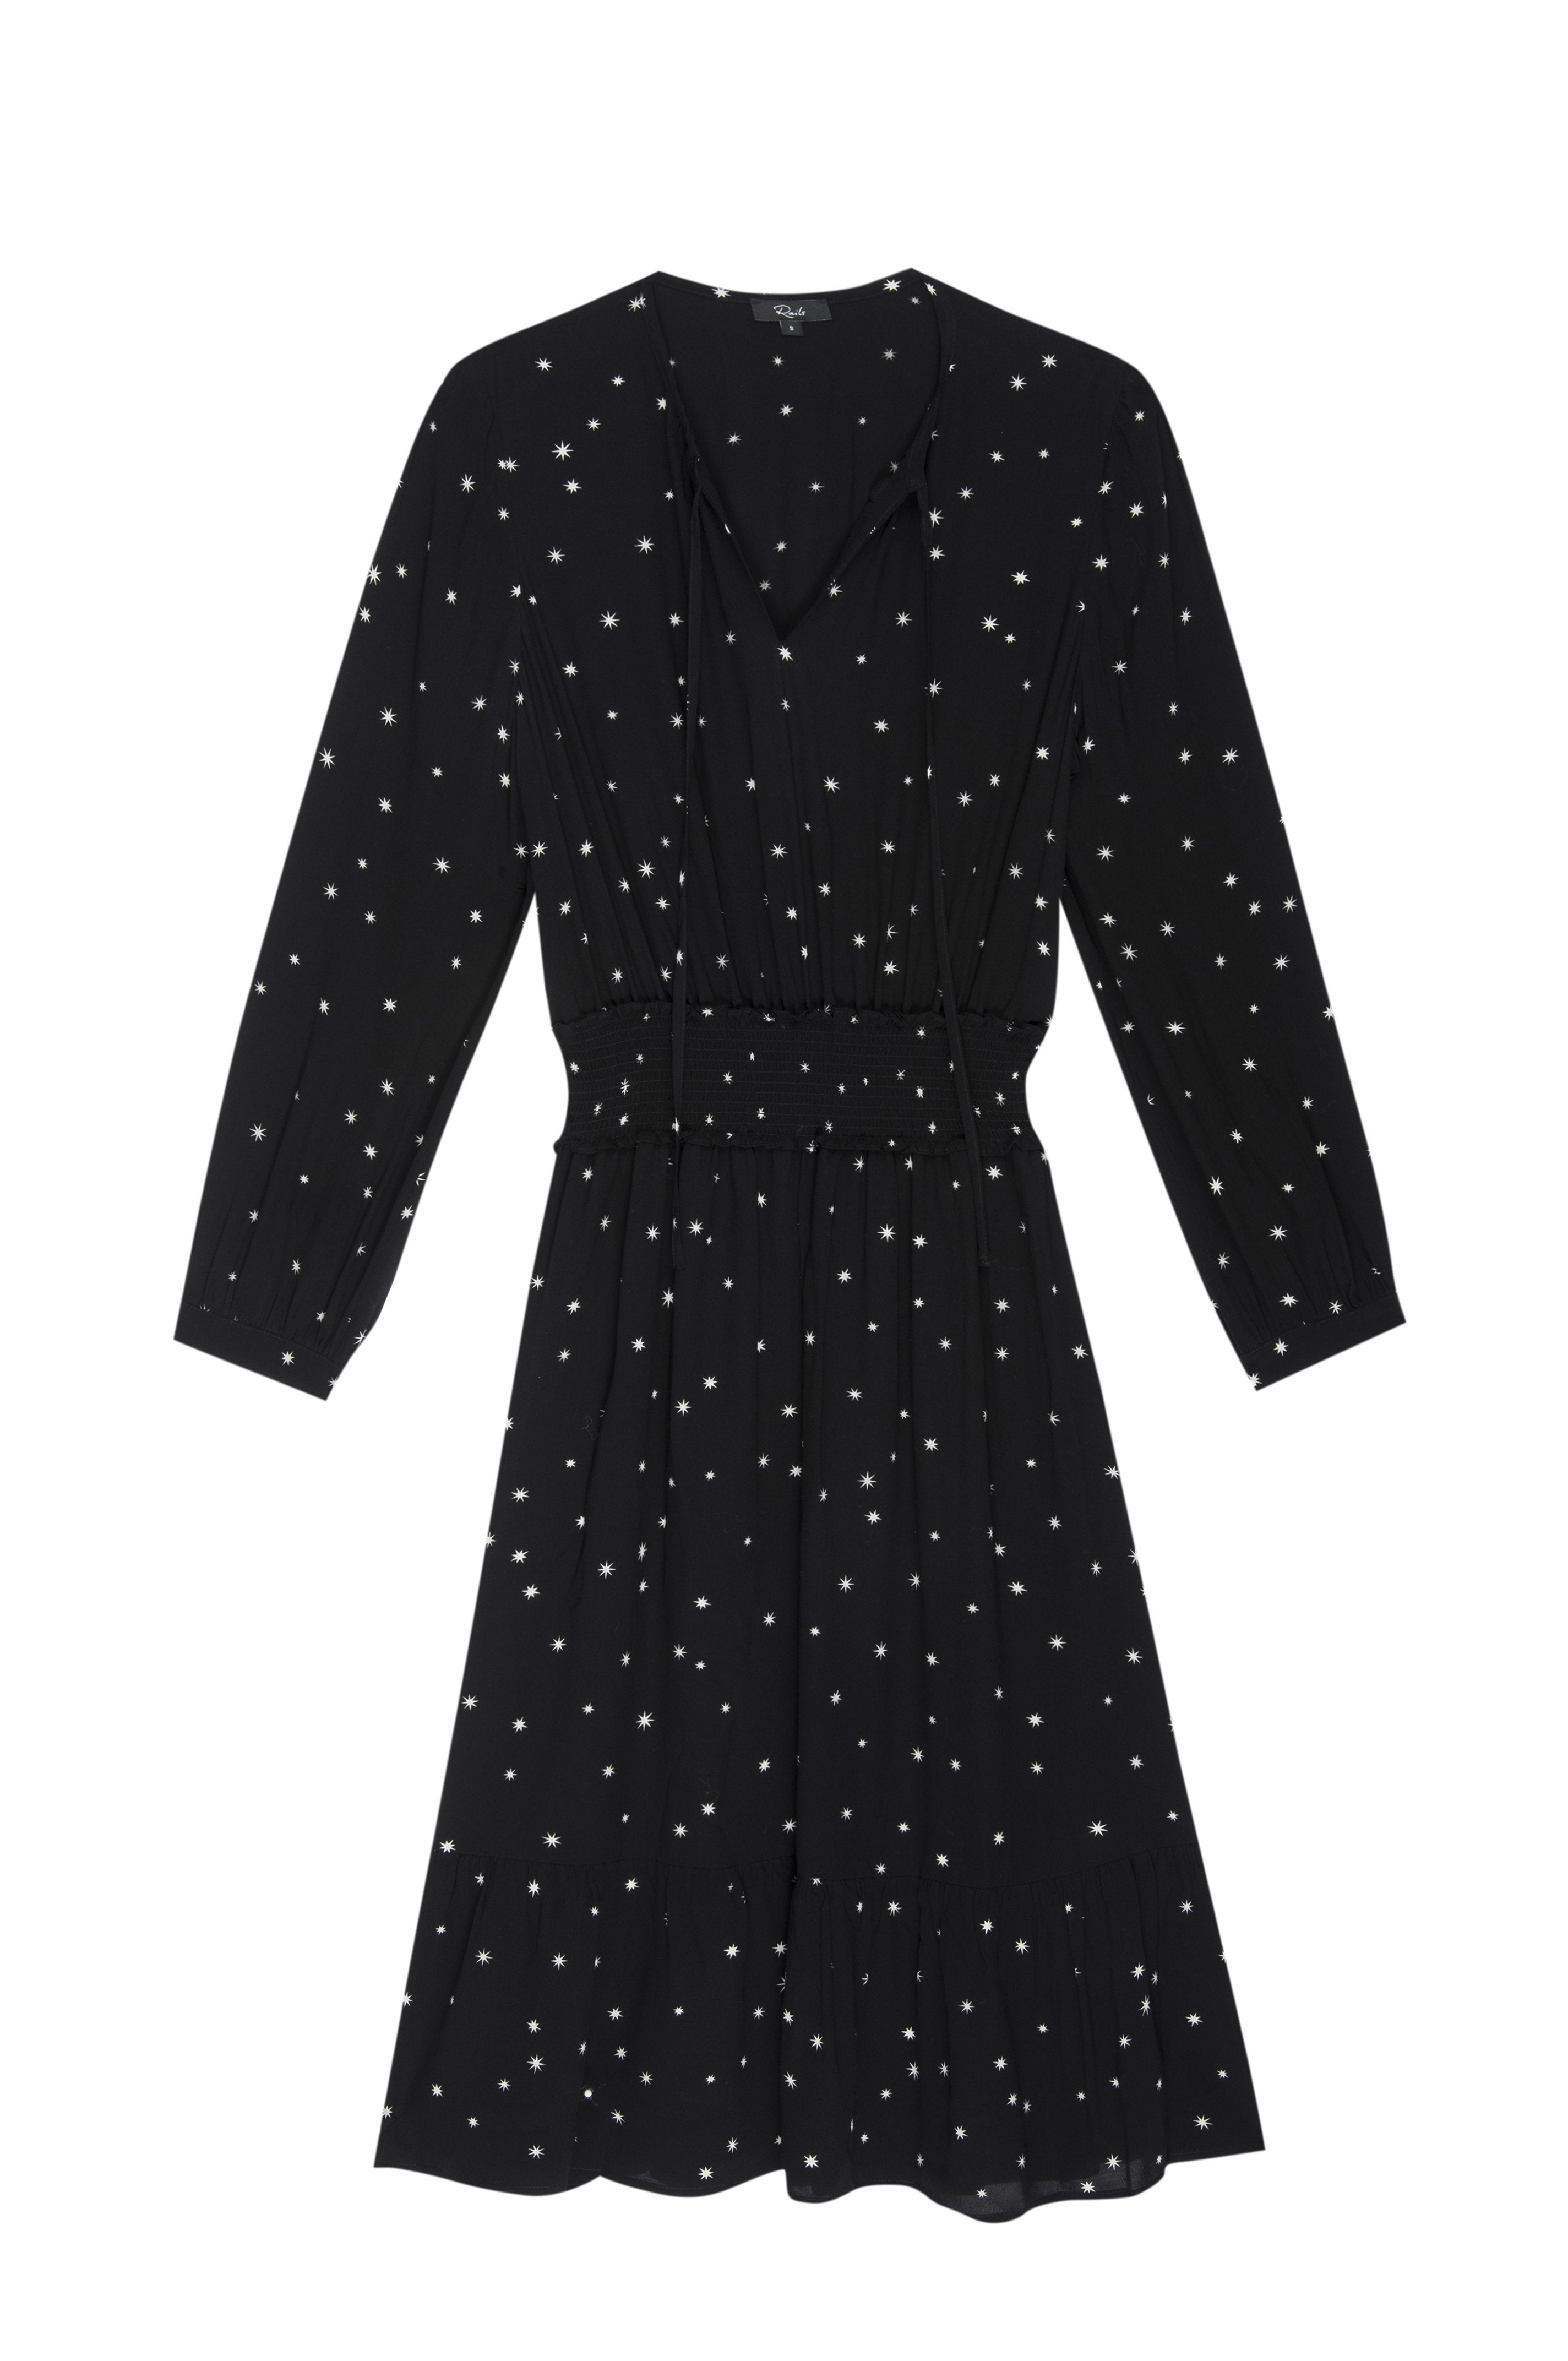 Joy dress - onyx starburst